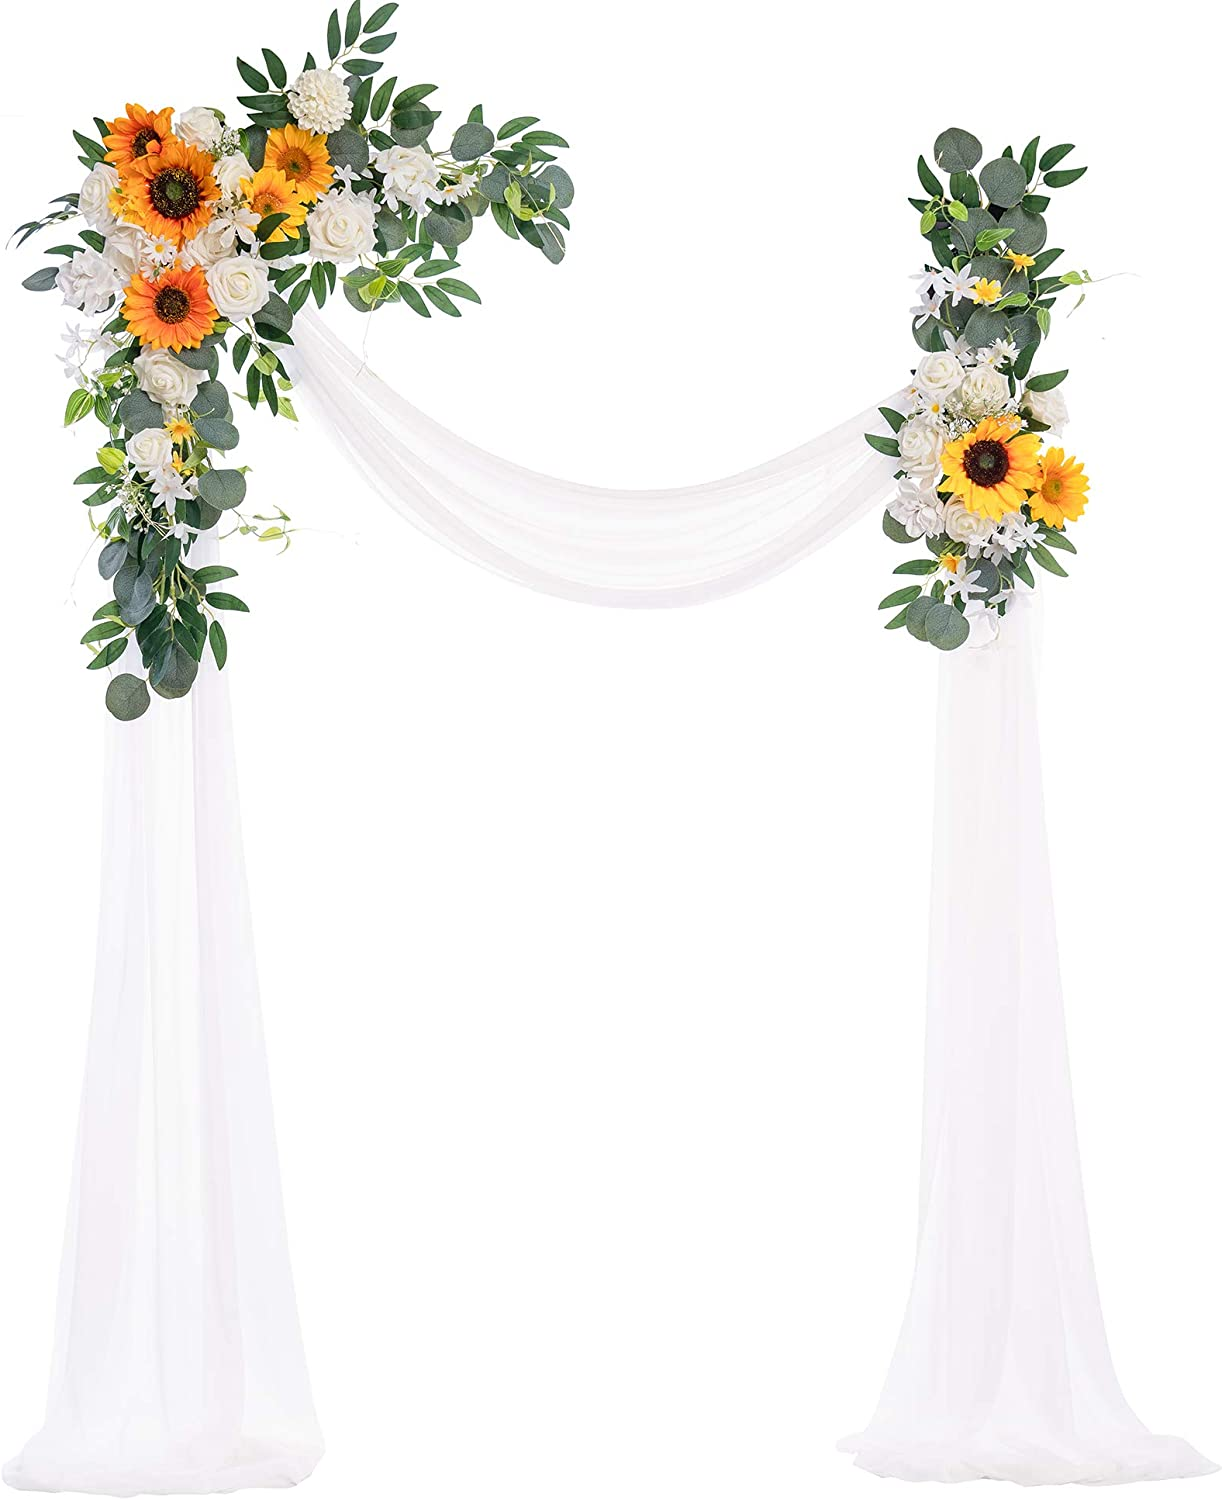 Ling's moment Artificial Wedding Arch Flowers Kit(Pack of 3) - 2pcs Sunflower Aobor Floral Arrangement with 1pc Semi-Sheer Swag for Ceremony and Reception Backdrop Decoration